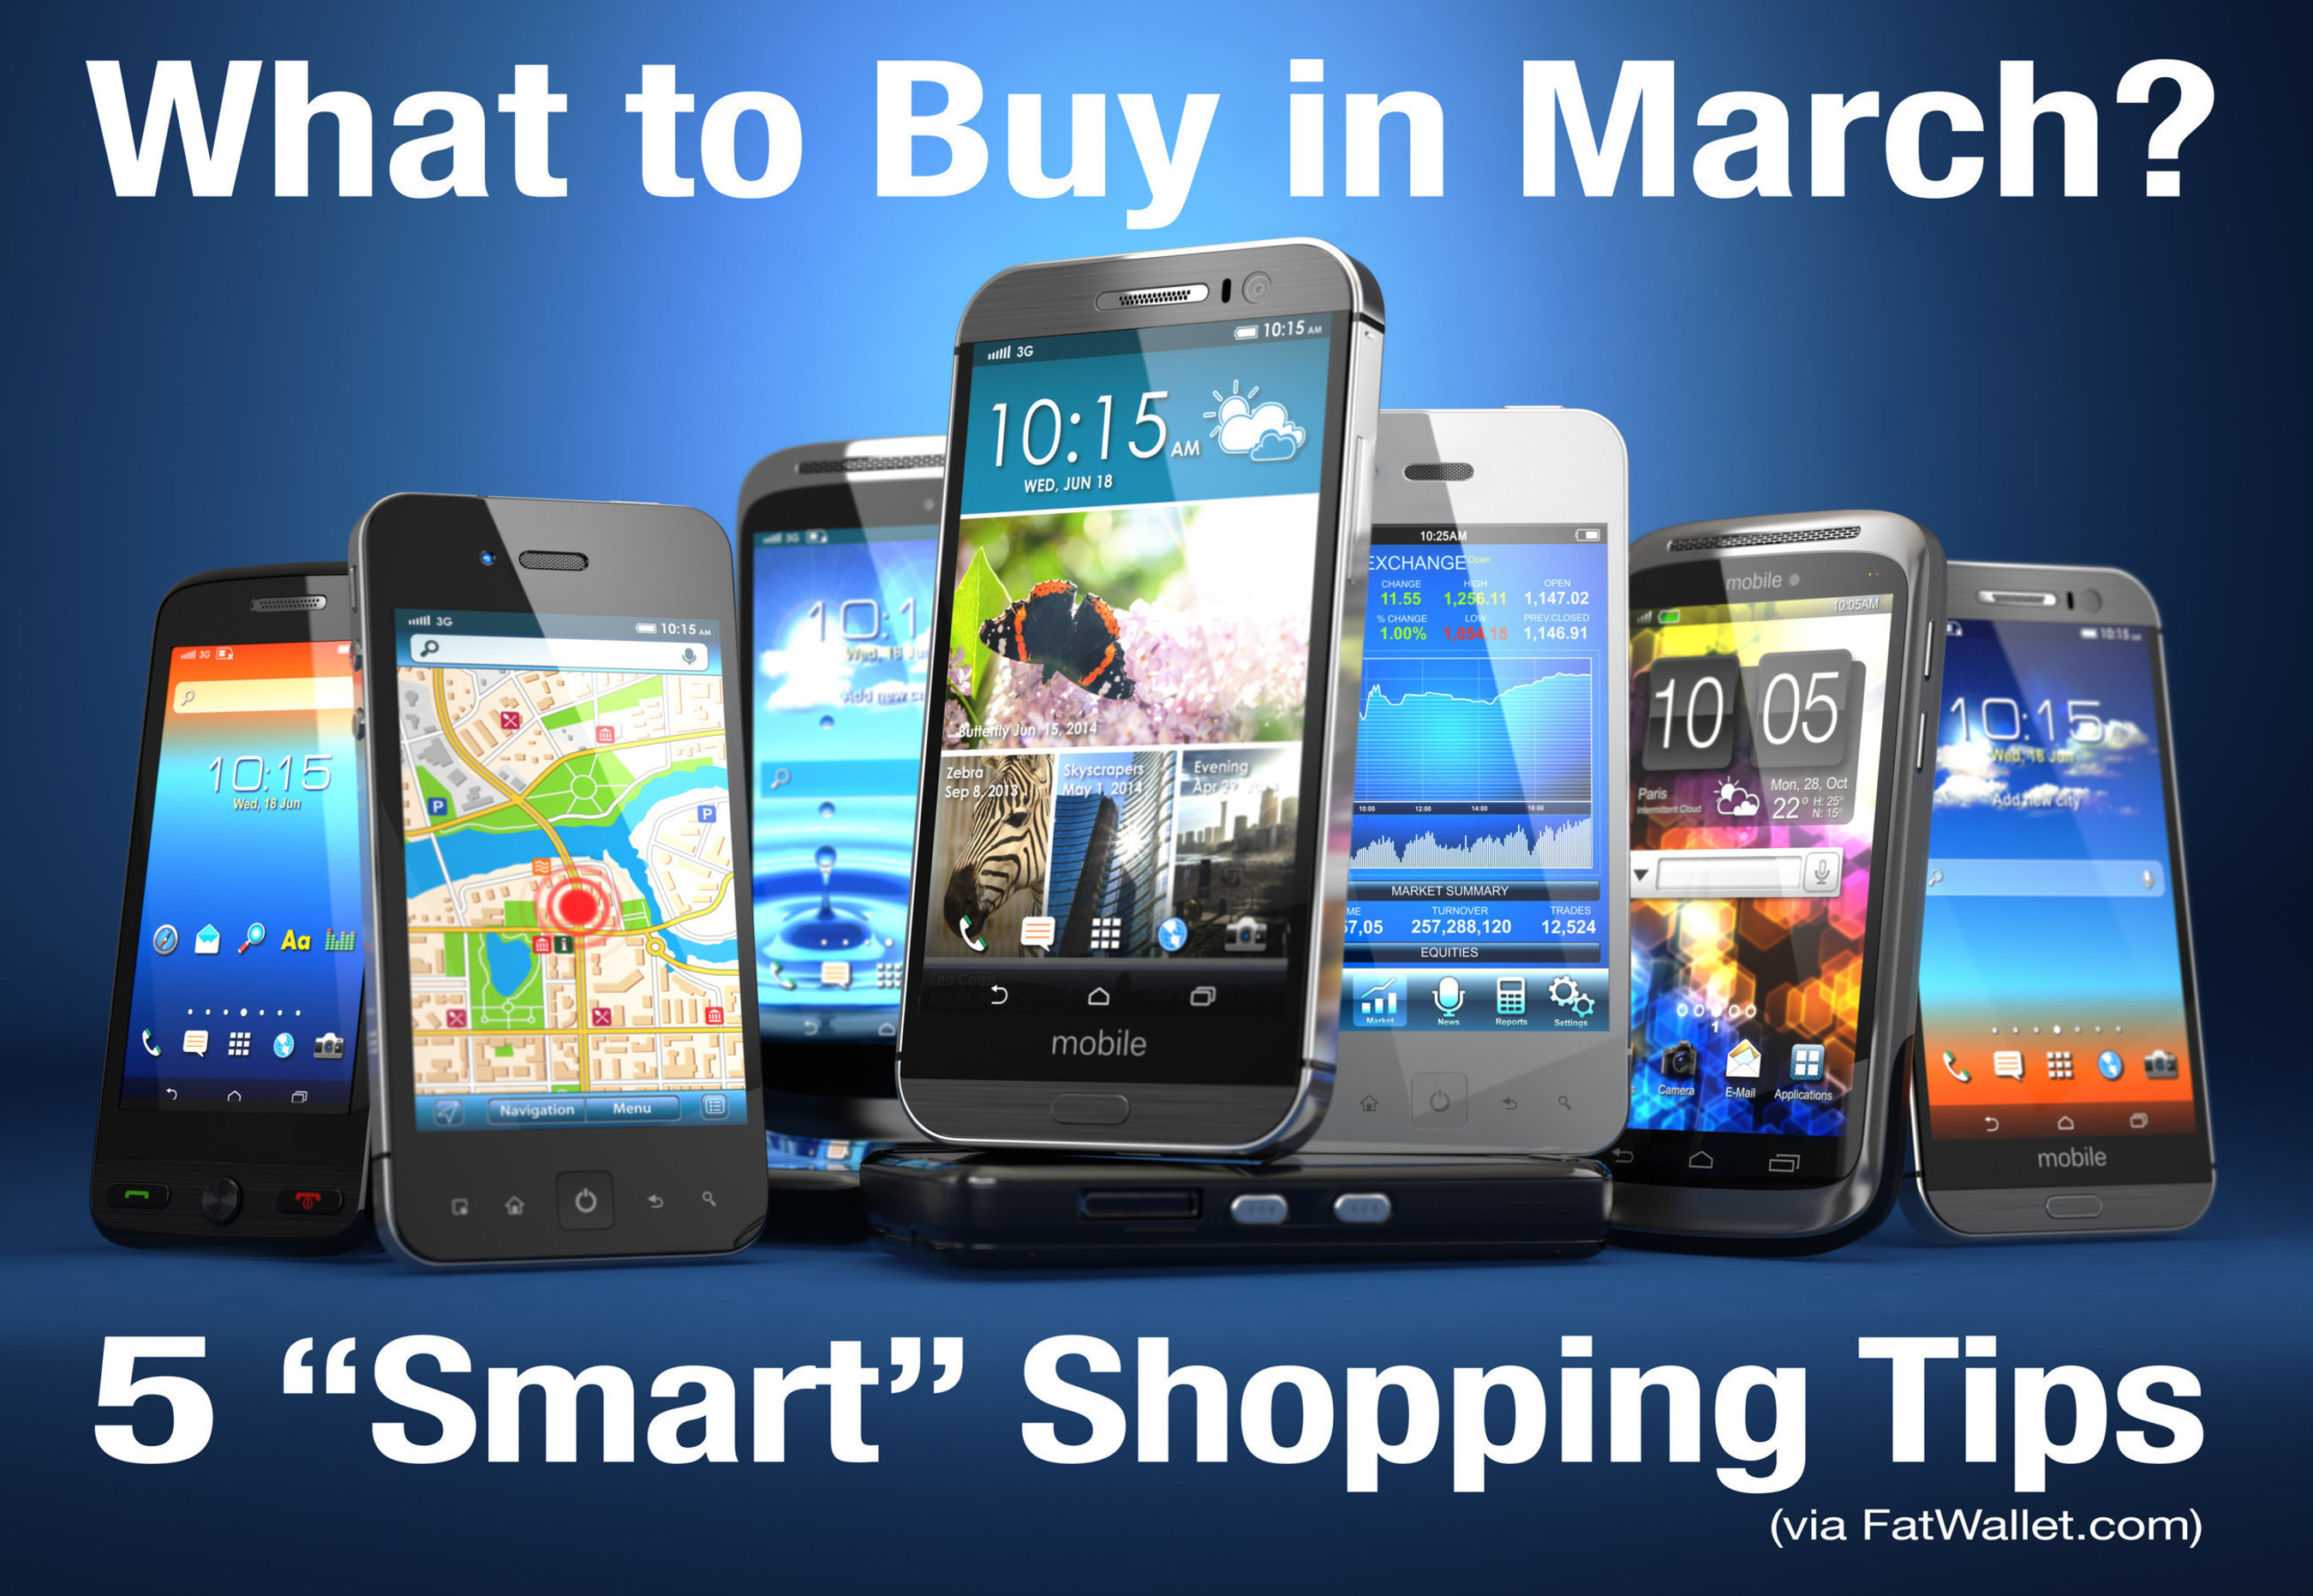 """5 """"Smart"""" Shopping Tips for What to Buy in March (Fat wallet.com)"""